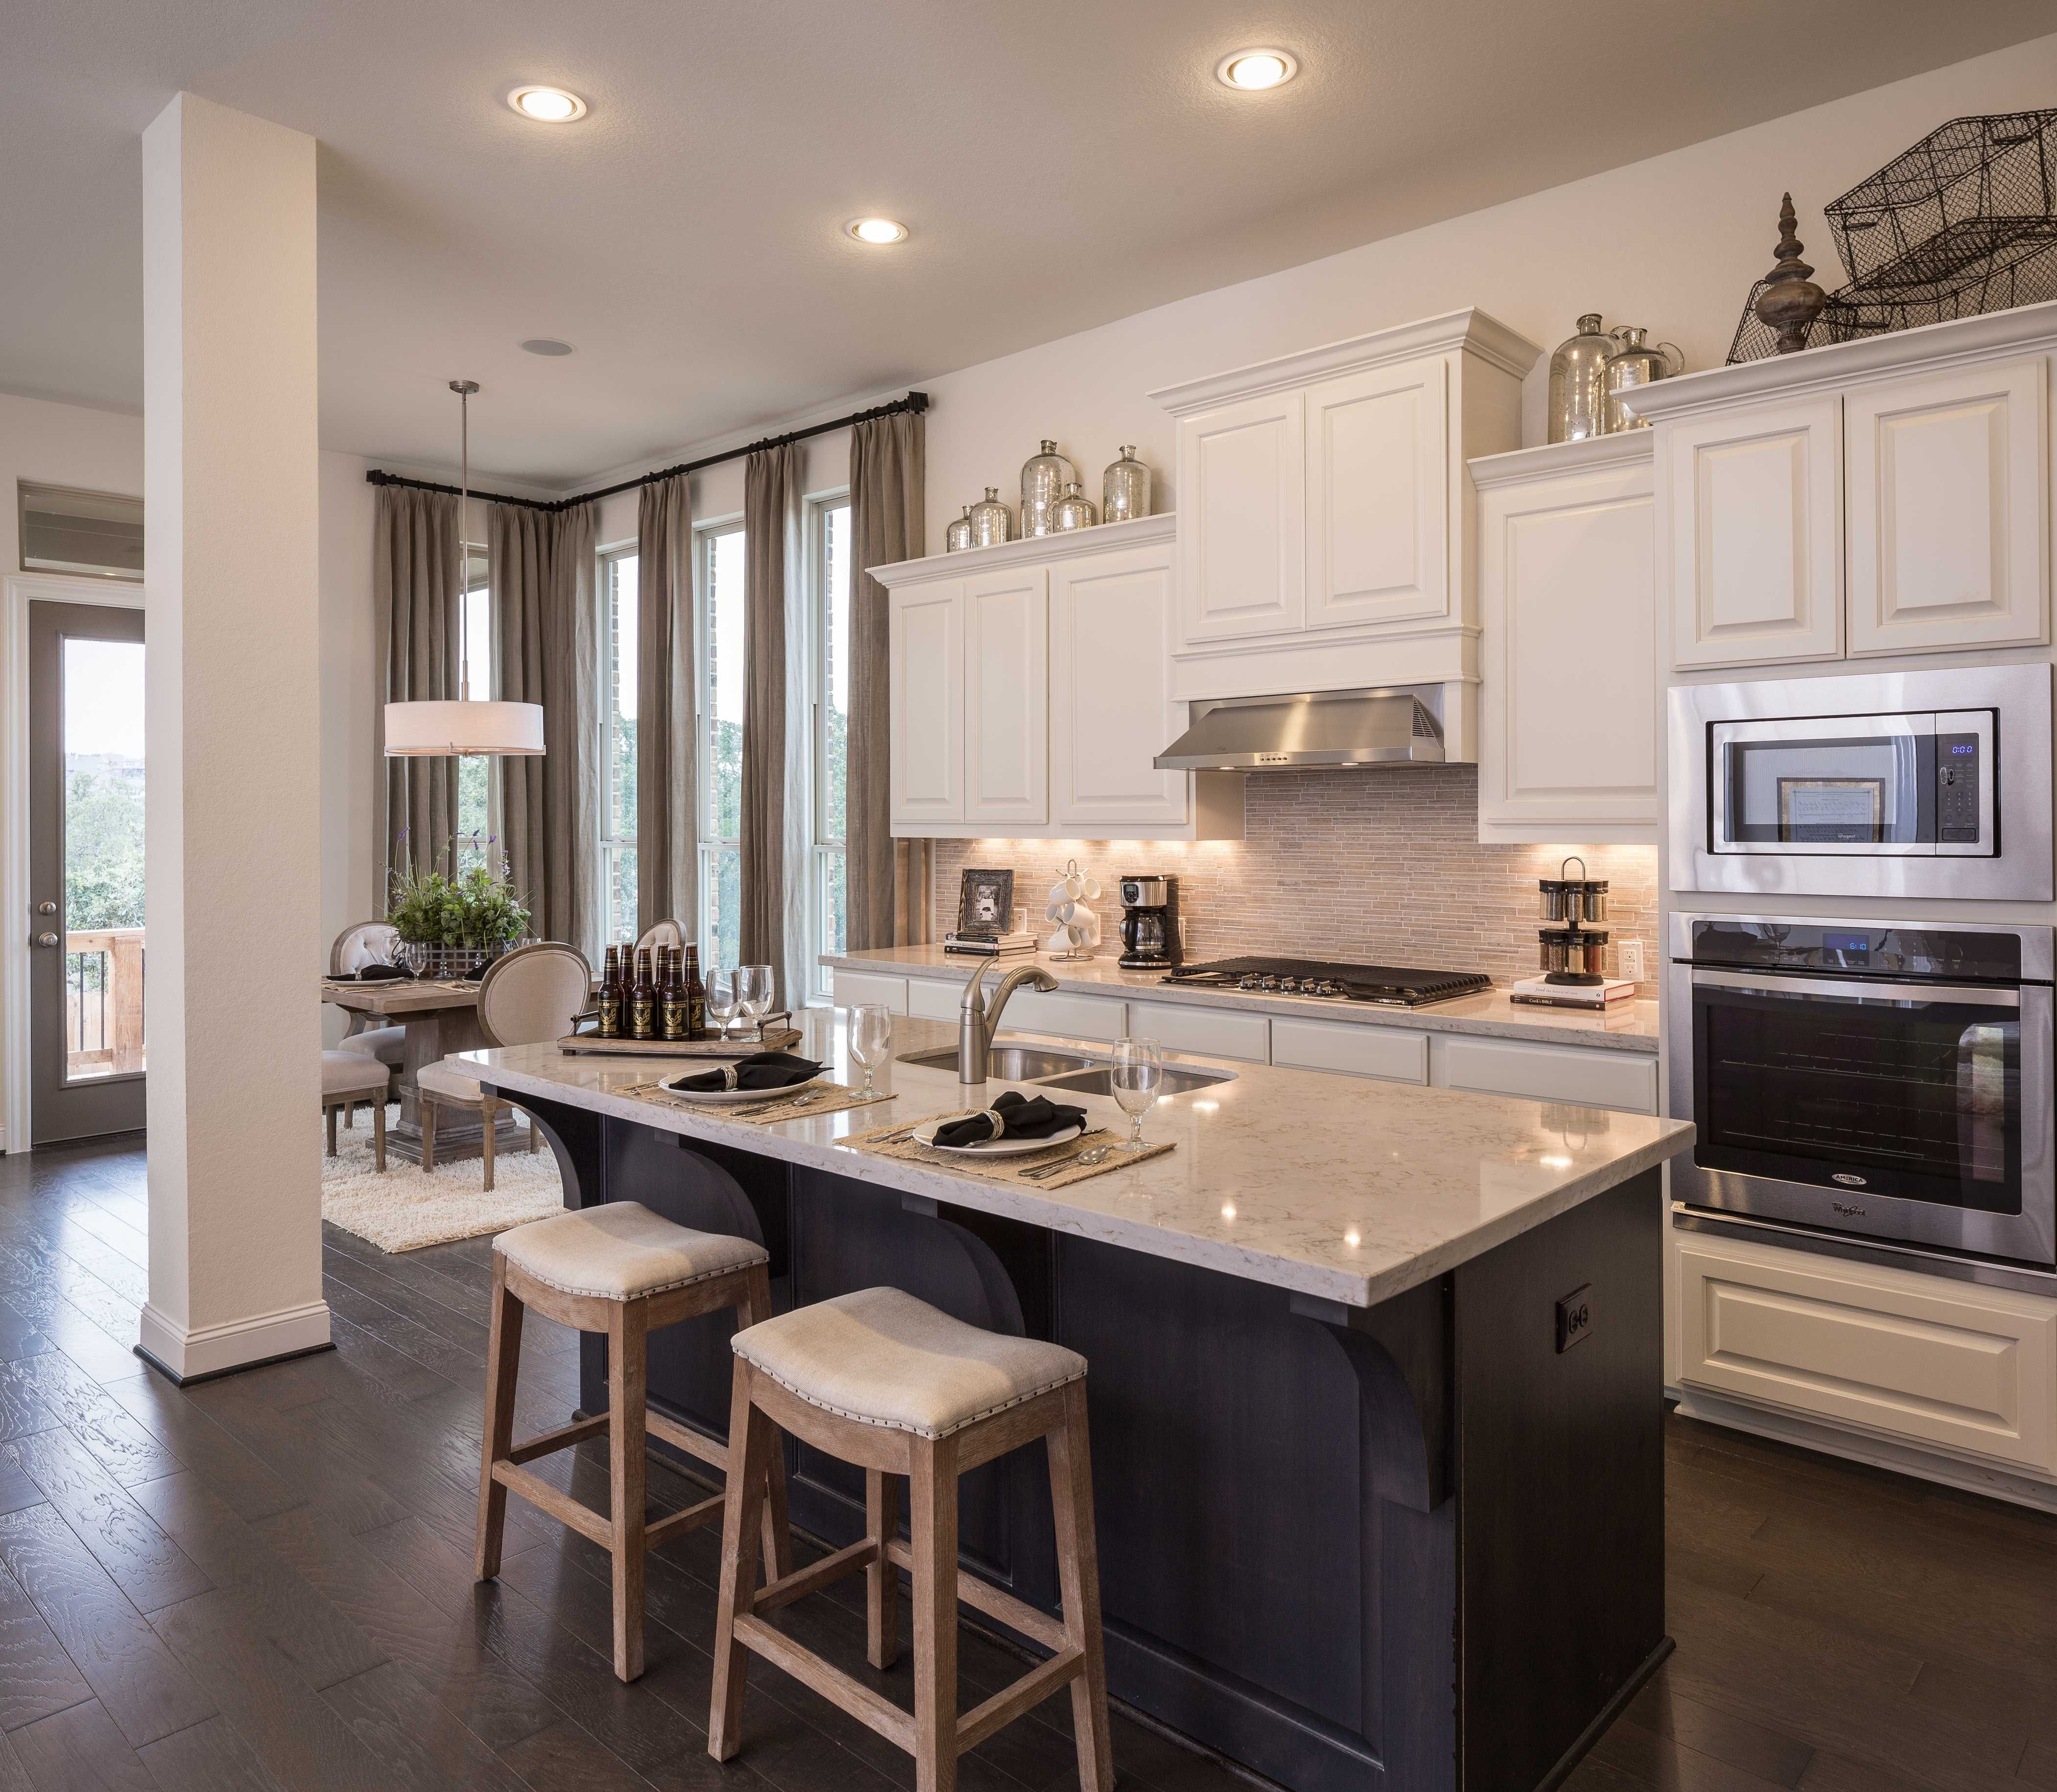 Model Home In San Antonio Texas Coronado Community Modelhomekitchens Kitchen Decor Home Kitchen Models